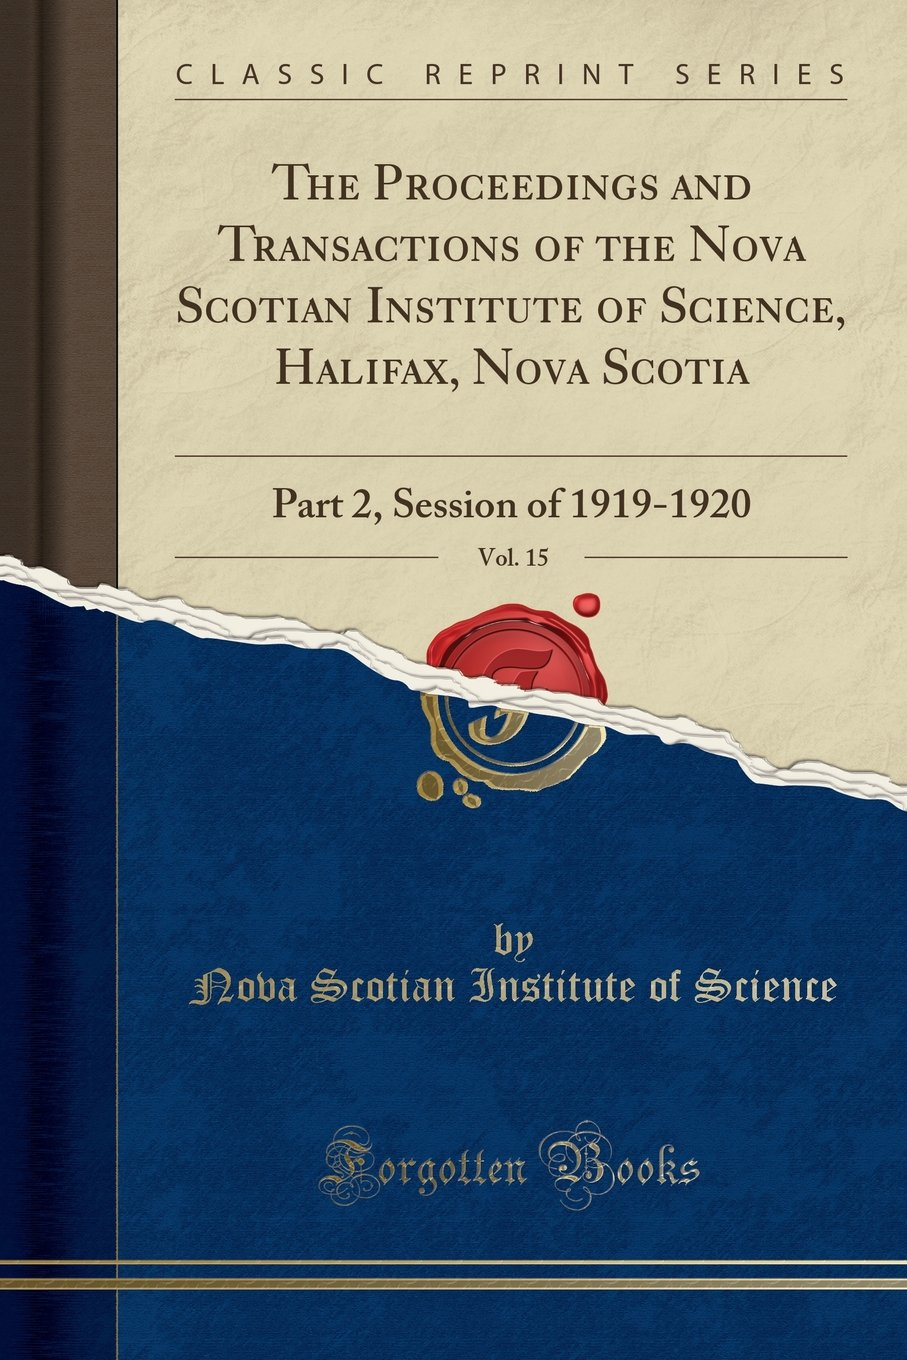 The Proceedings and Transactions of the Nova Scotian Institute of Science, Halifax, Nova Scotia, Vol. 15: Part 2, Session of 1919-1920 (Classic Reprint) ebook